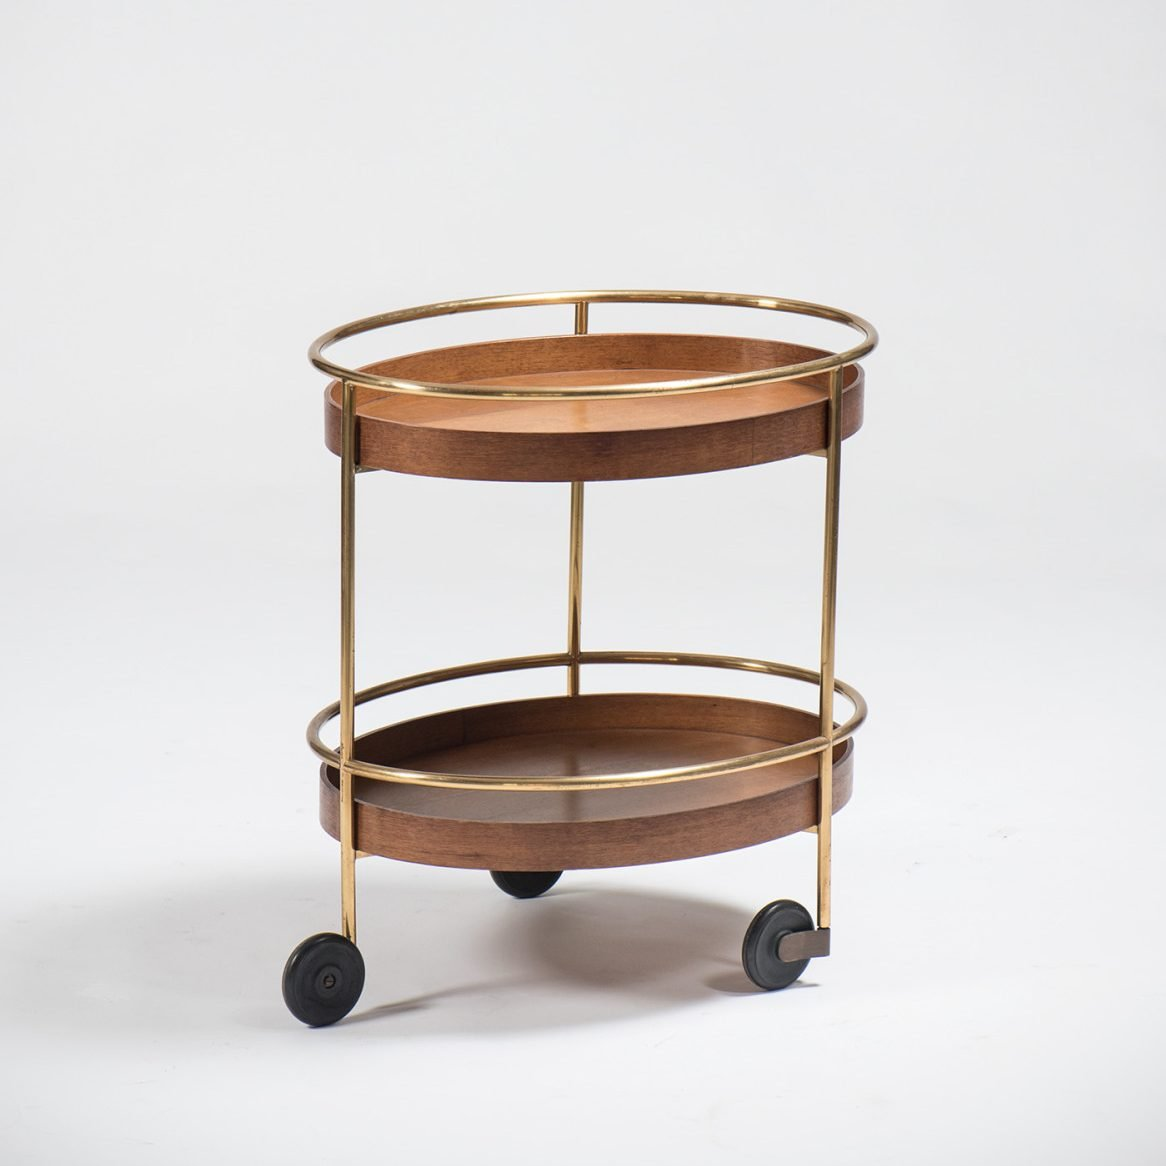 Paolo Tilche |  Serving cart